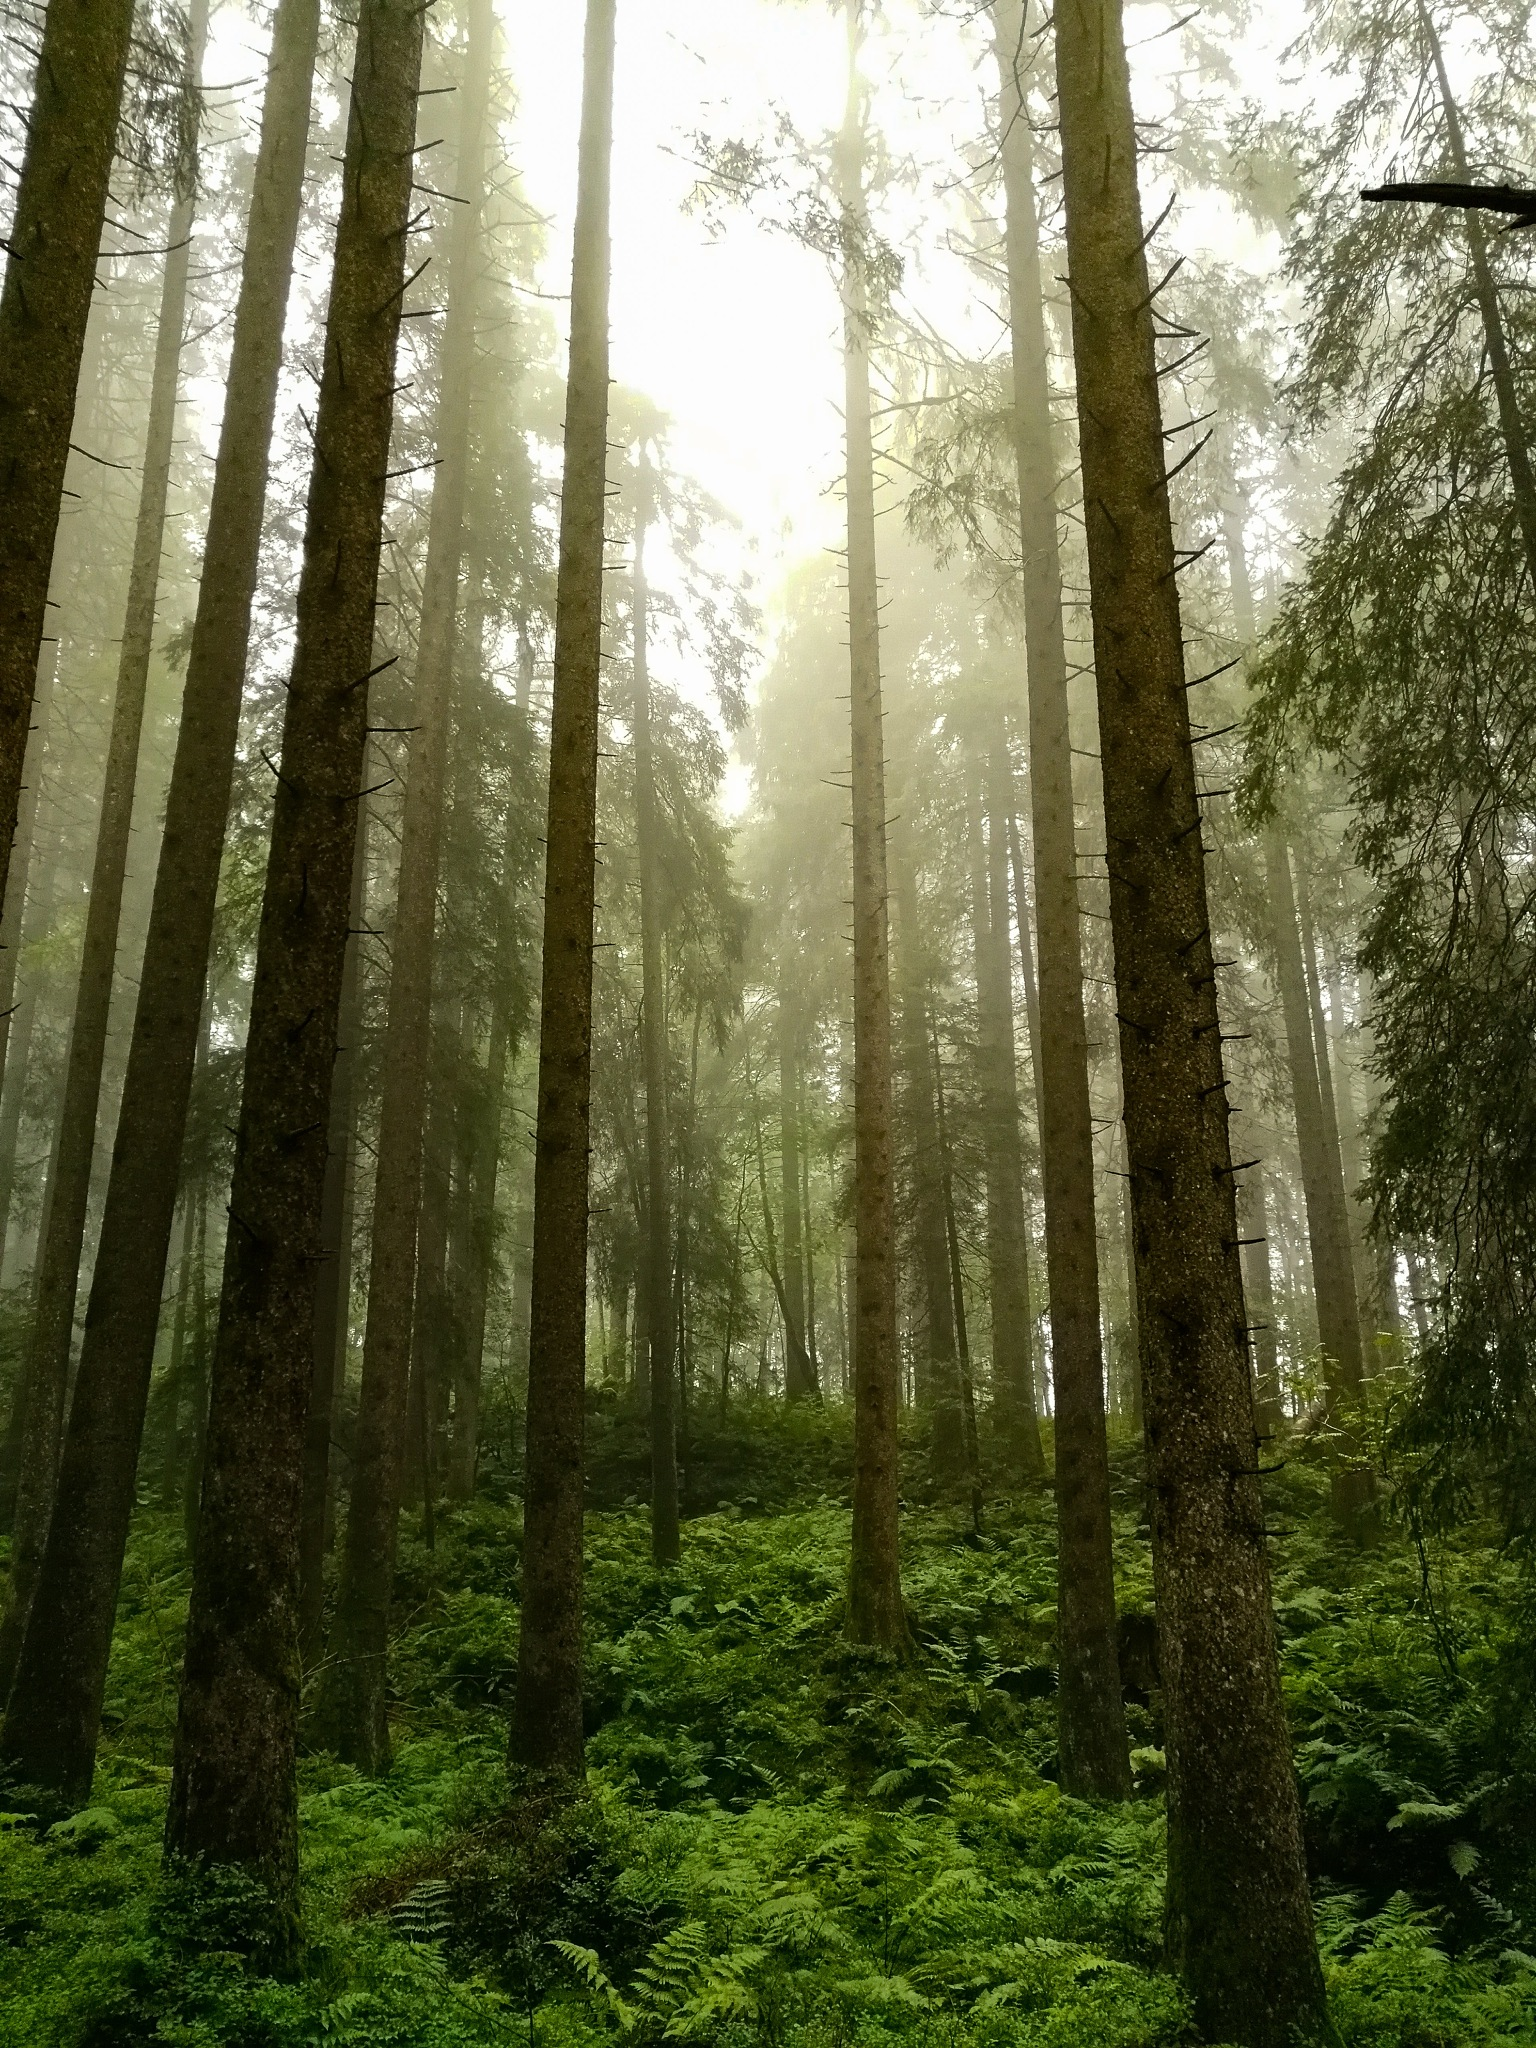 A foggy day in the forest  by Noah Dustin